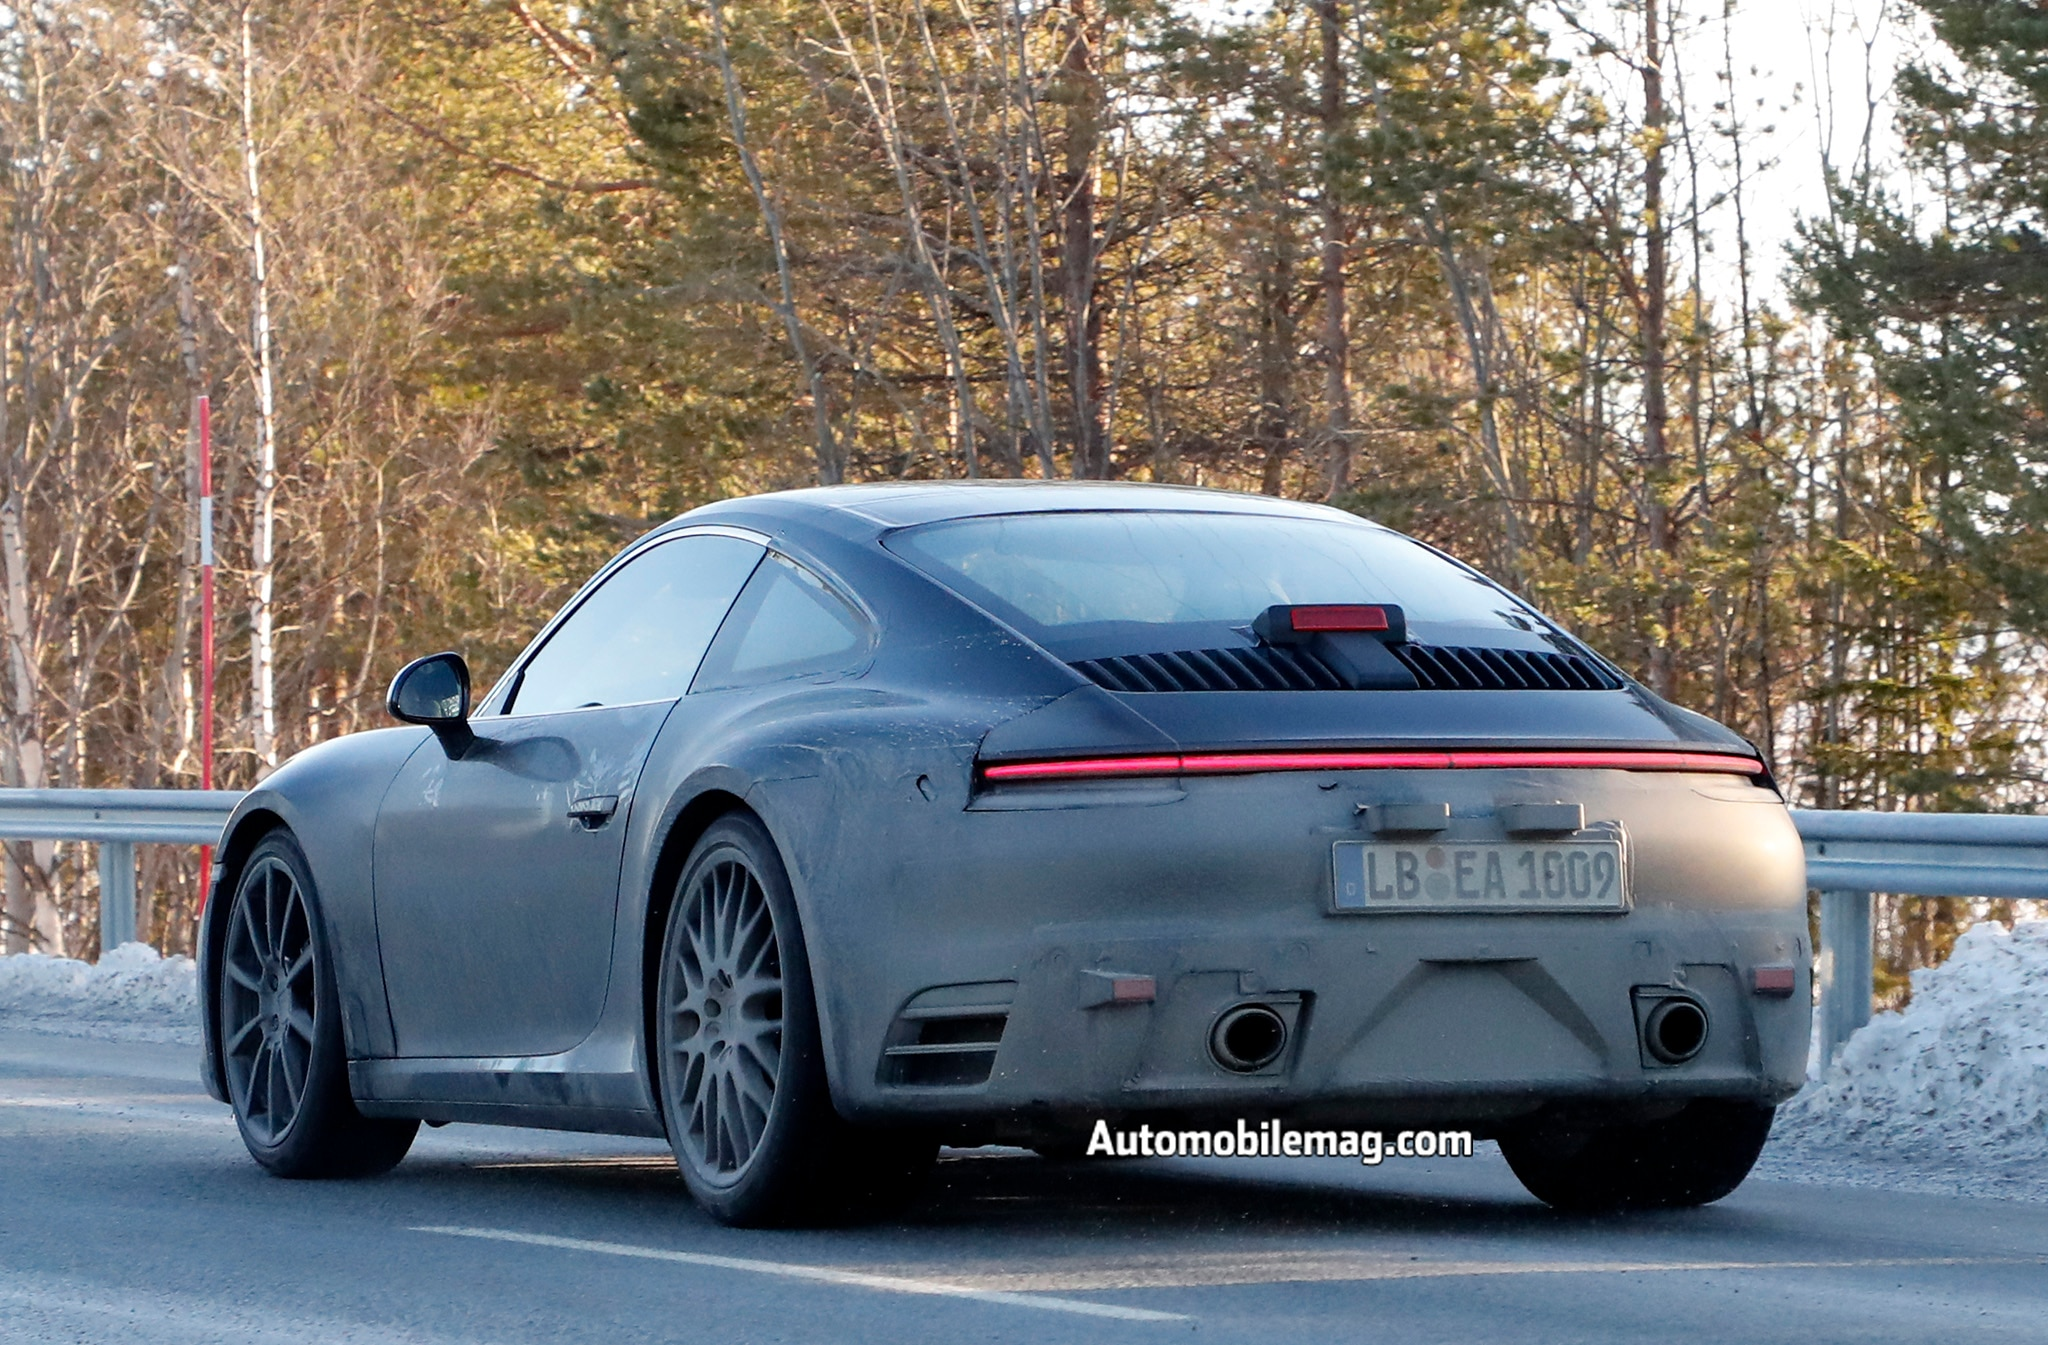 porsche gt2 rs 2018 with 2019 Porsche 911 Spied on 2019 Porsche 911 Spied furthermore 2 in addition Triumph Motorcycles To Launch In India together with Geneva Porsche 918 Spyder With Hybrid Drive furthermore 2019 Porsche 911 Gt3 Rs 4 2 Latest Spy Shots.